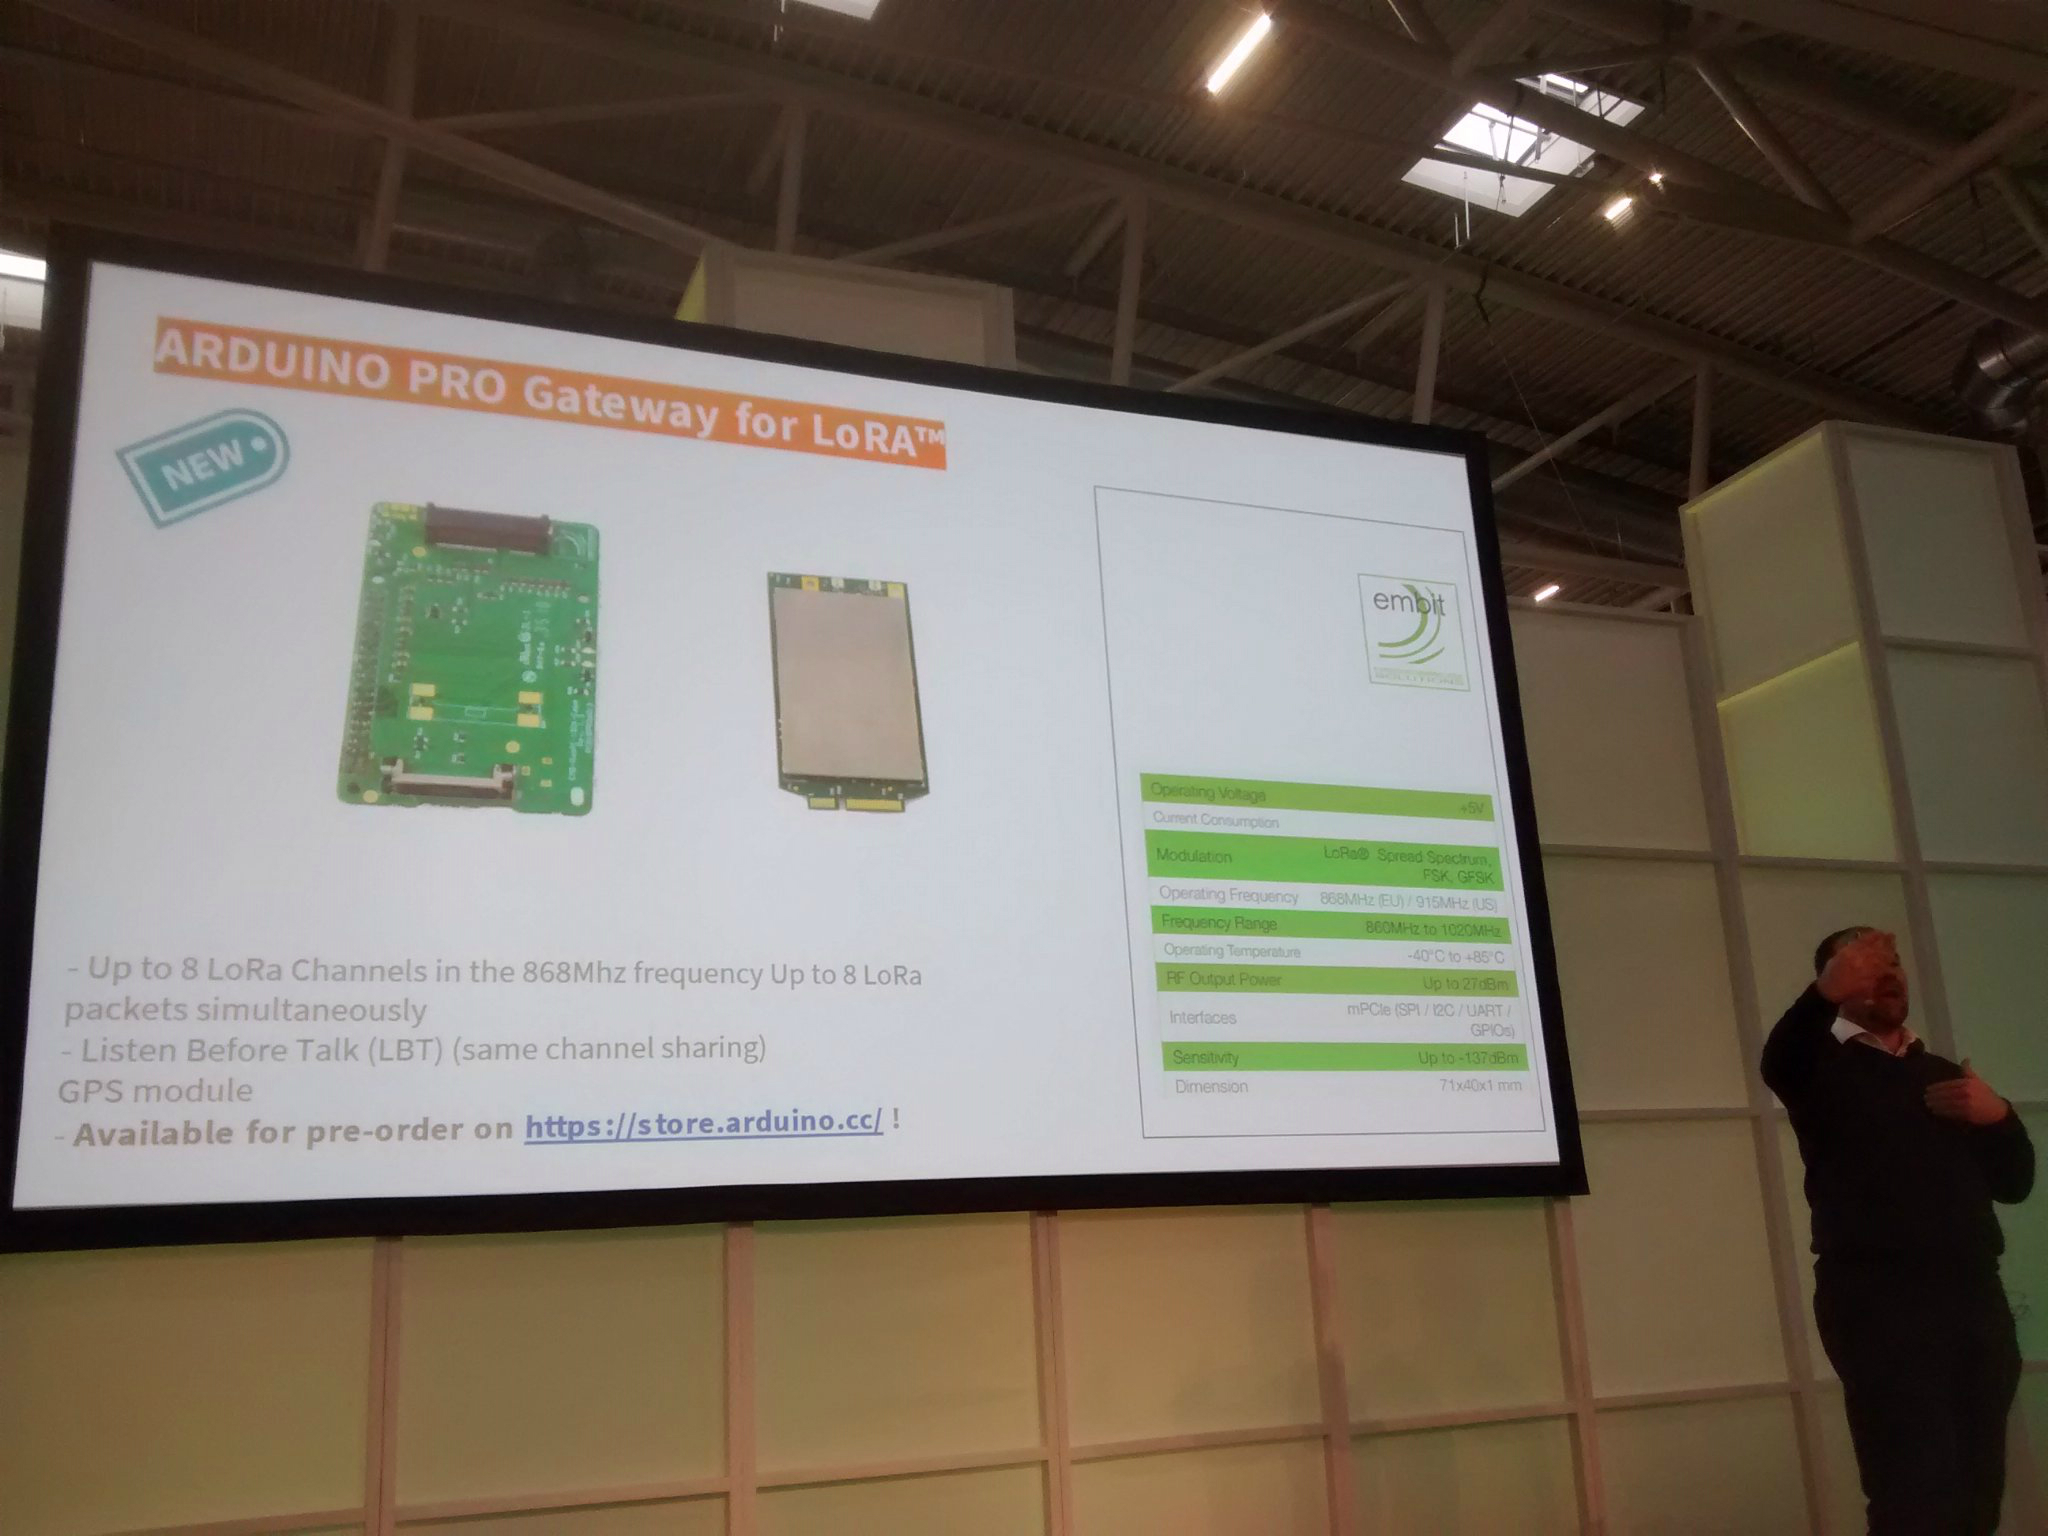 Electronica 2018: Raspberry Pi hosts Arduino PRO Gateway for LoRa